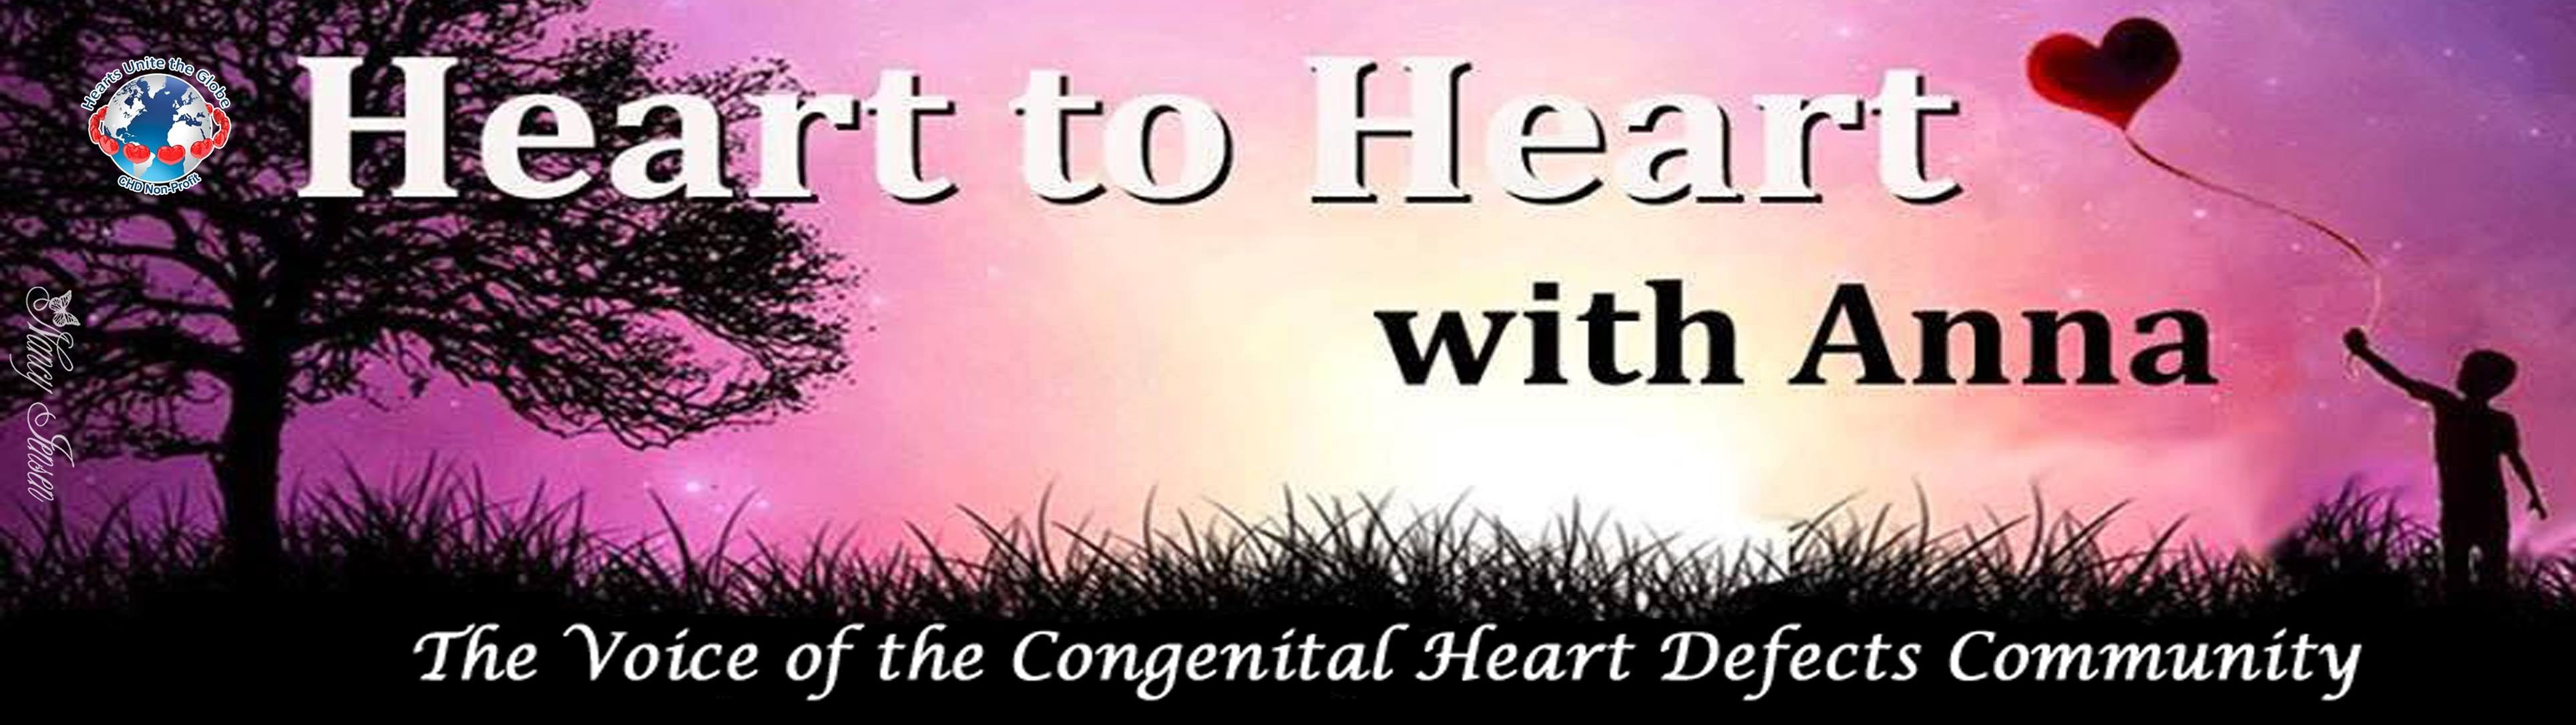 The Voice of the Congenital Heart Defect Community